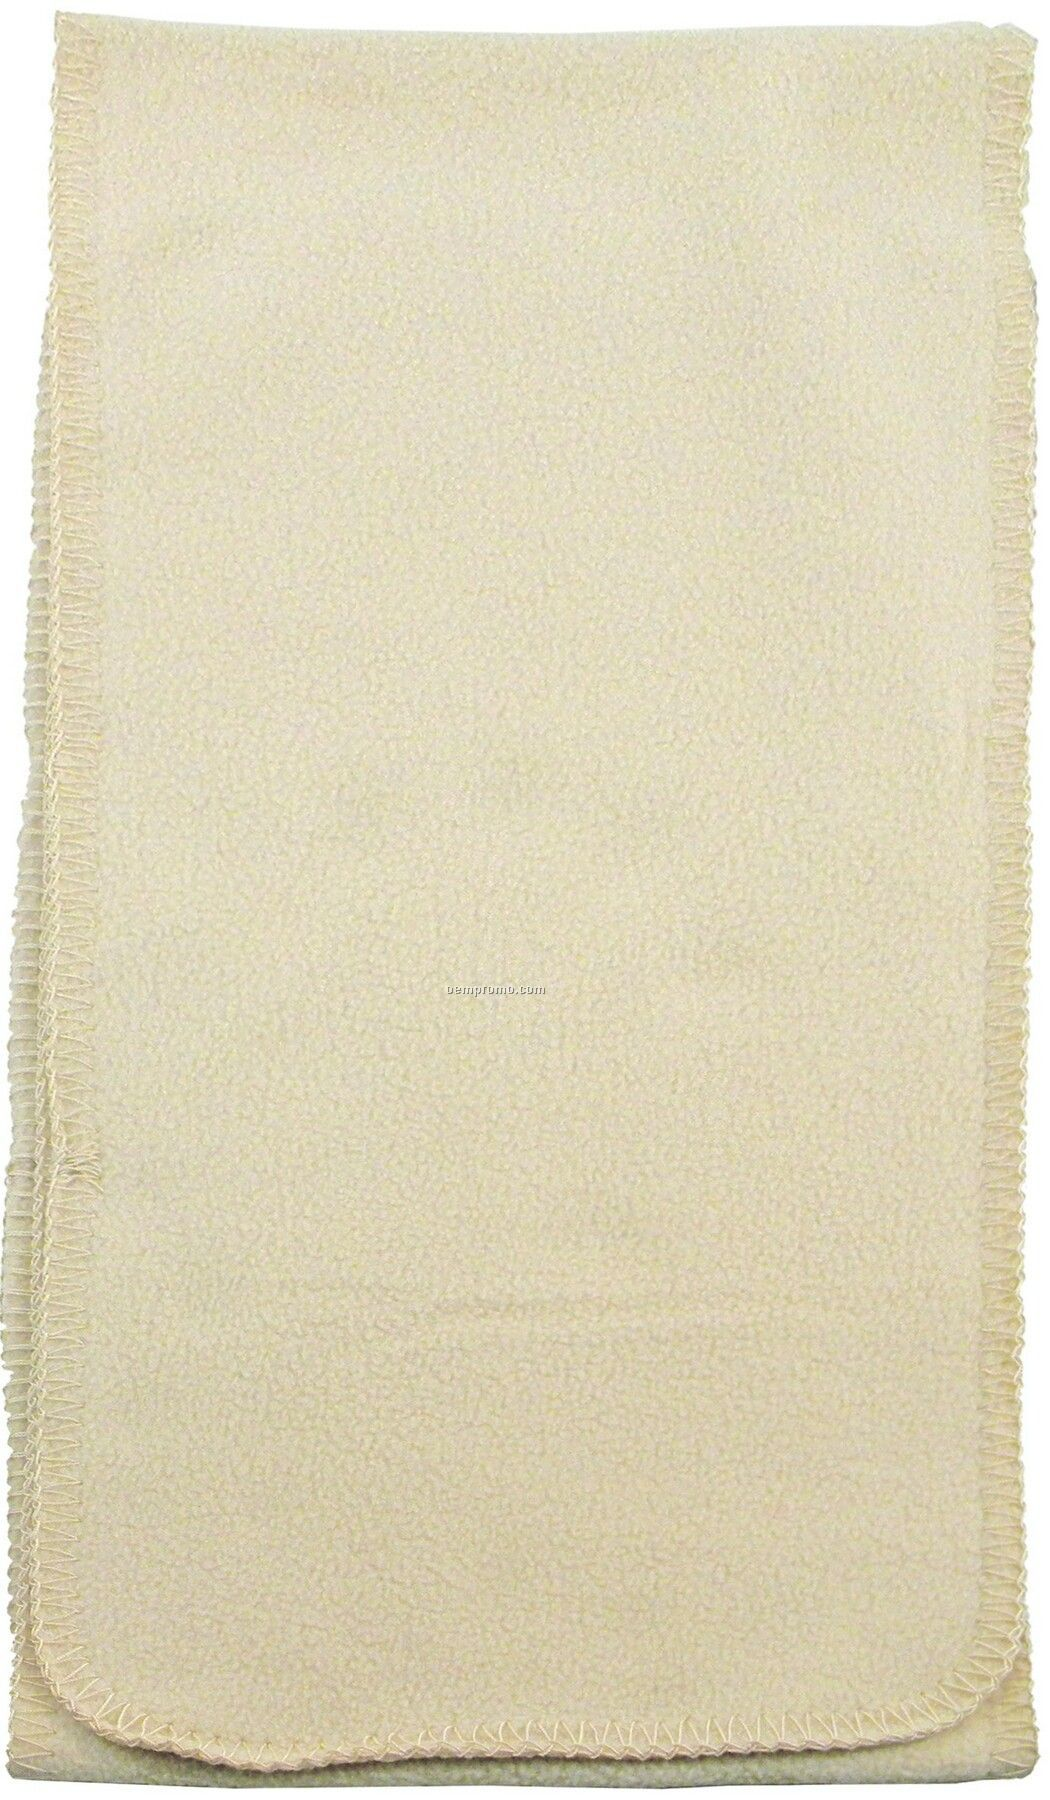 Tone Of Tone Fleece Scarf W/ Whipped Stitch (Overseas 6-7 Week Delivery)